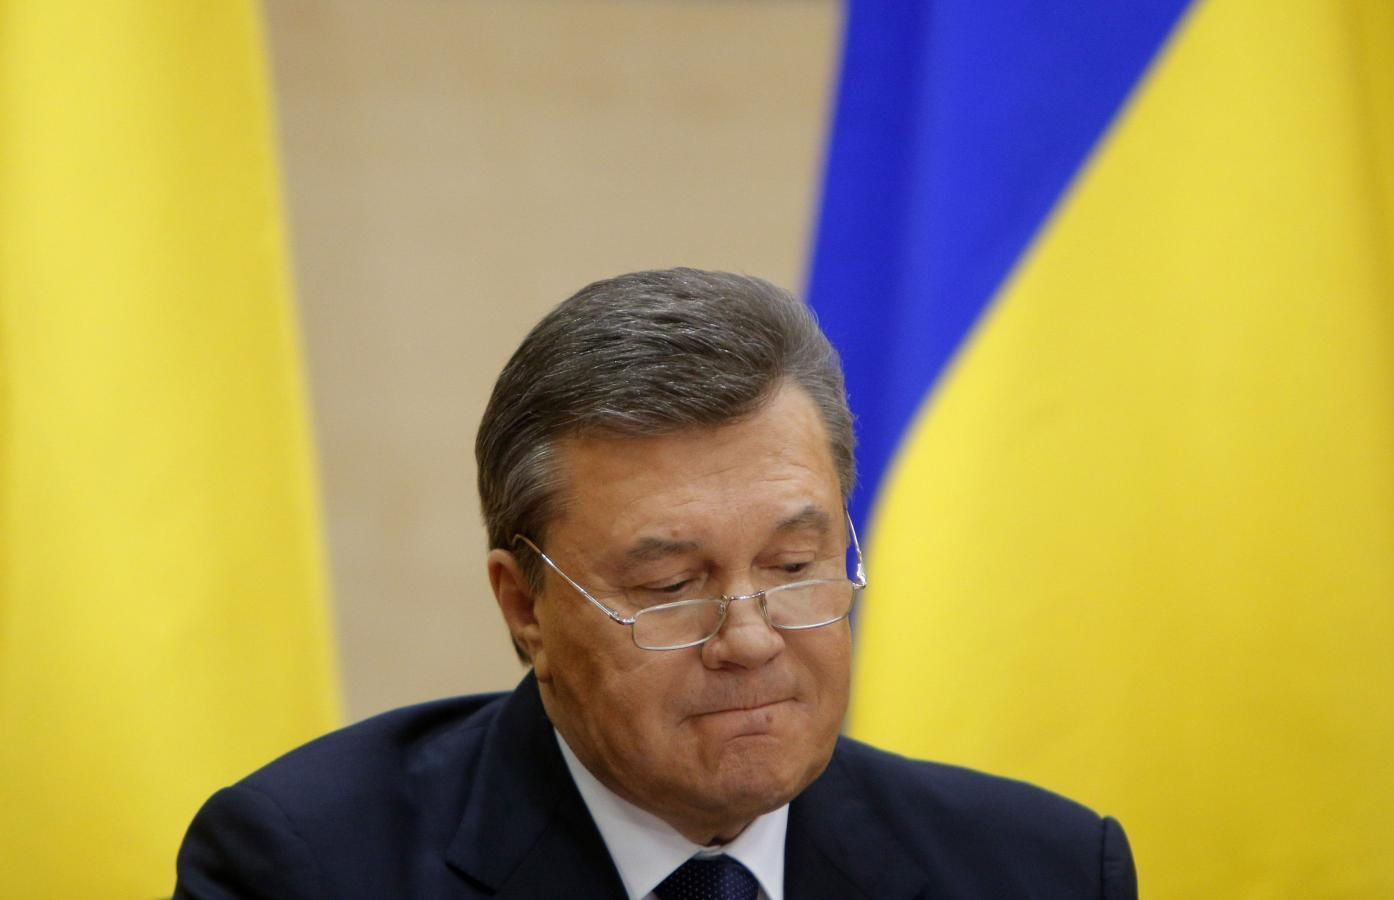 Toppled 'mafia' president cost Ukraine up to $100 billion